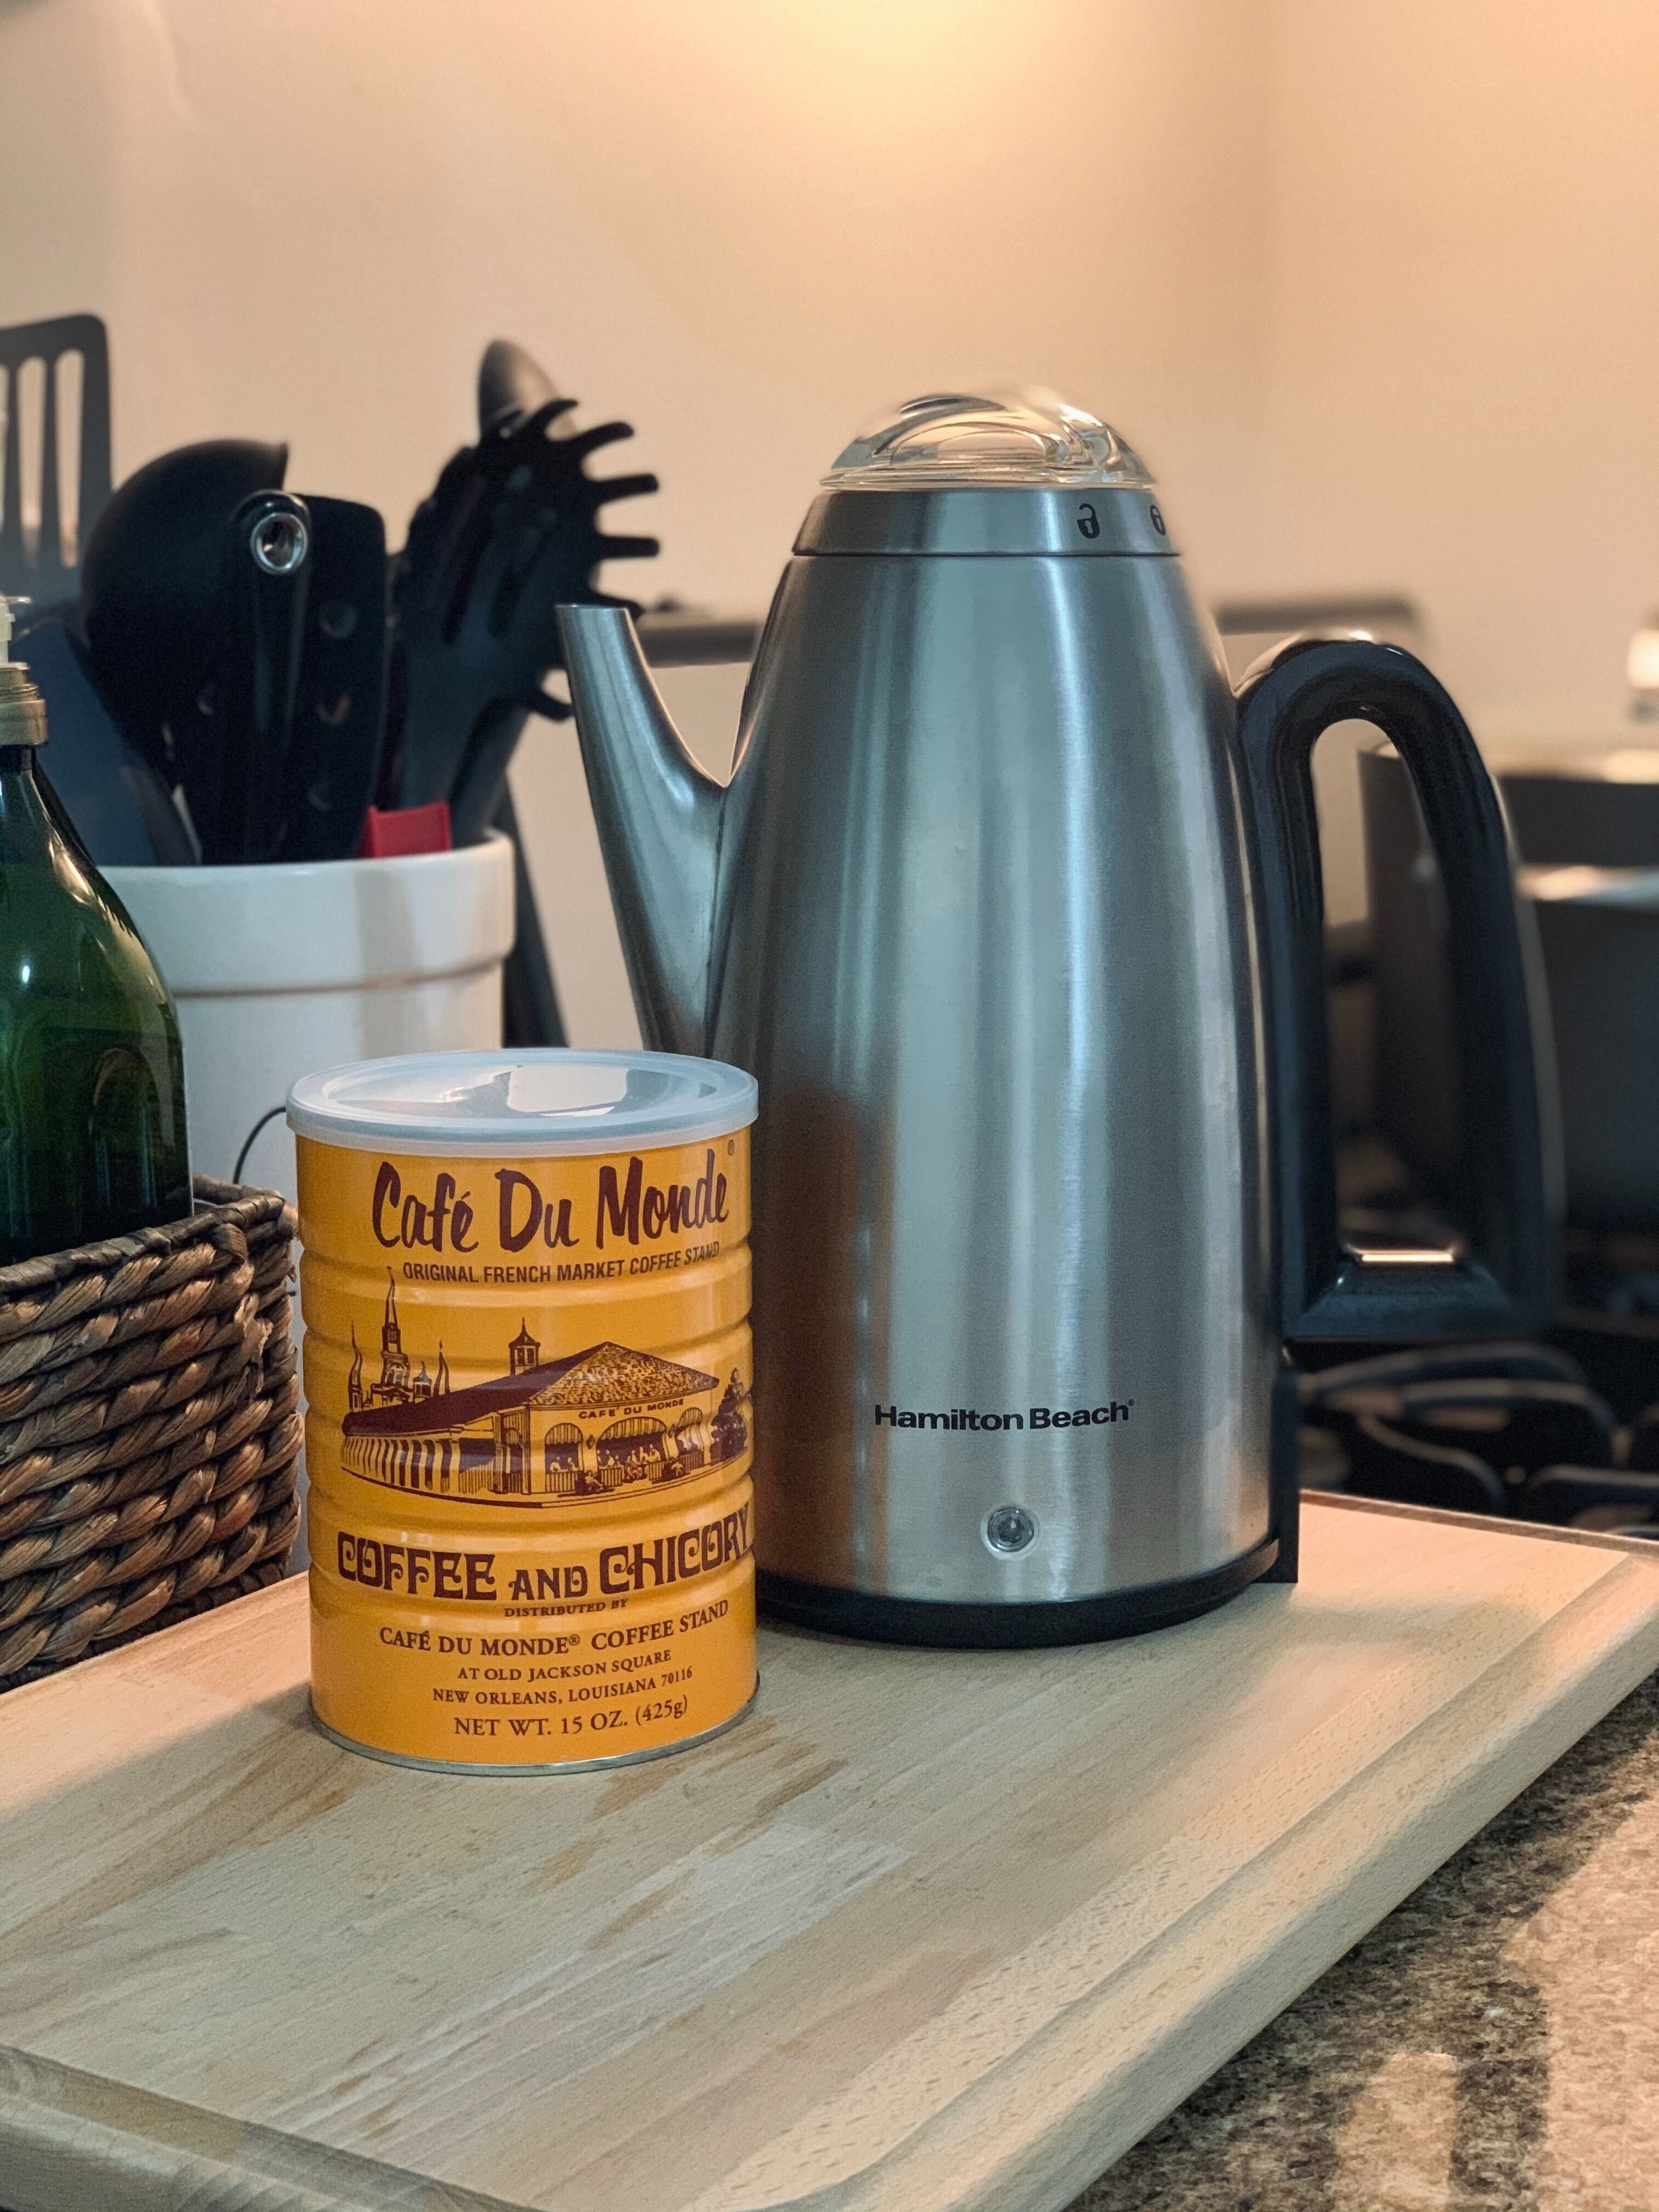 Canister of Cafe Du Monde coffee and a Hamilton Beach coffee percolator